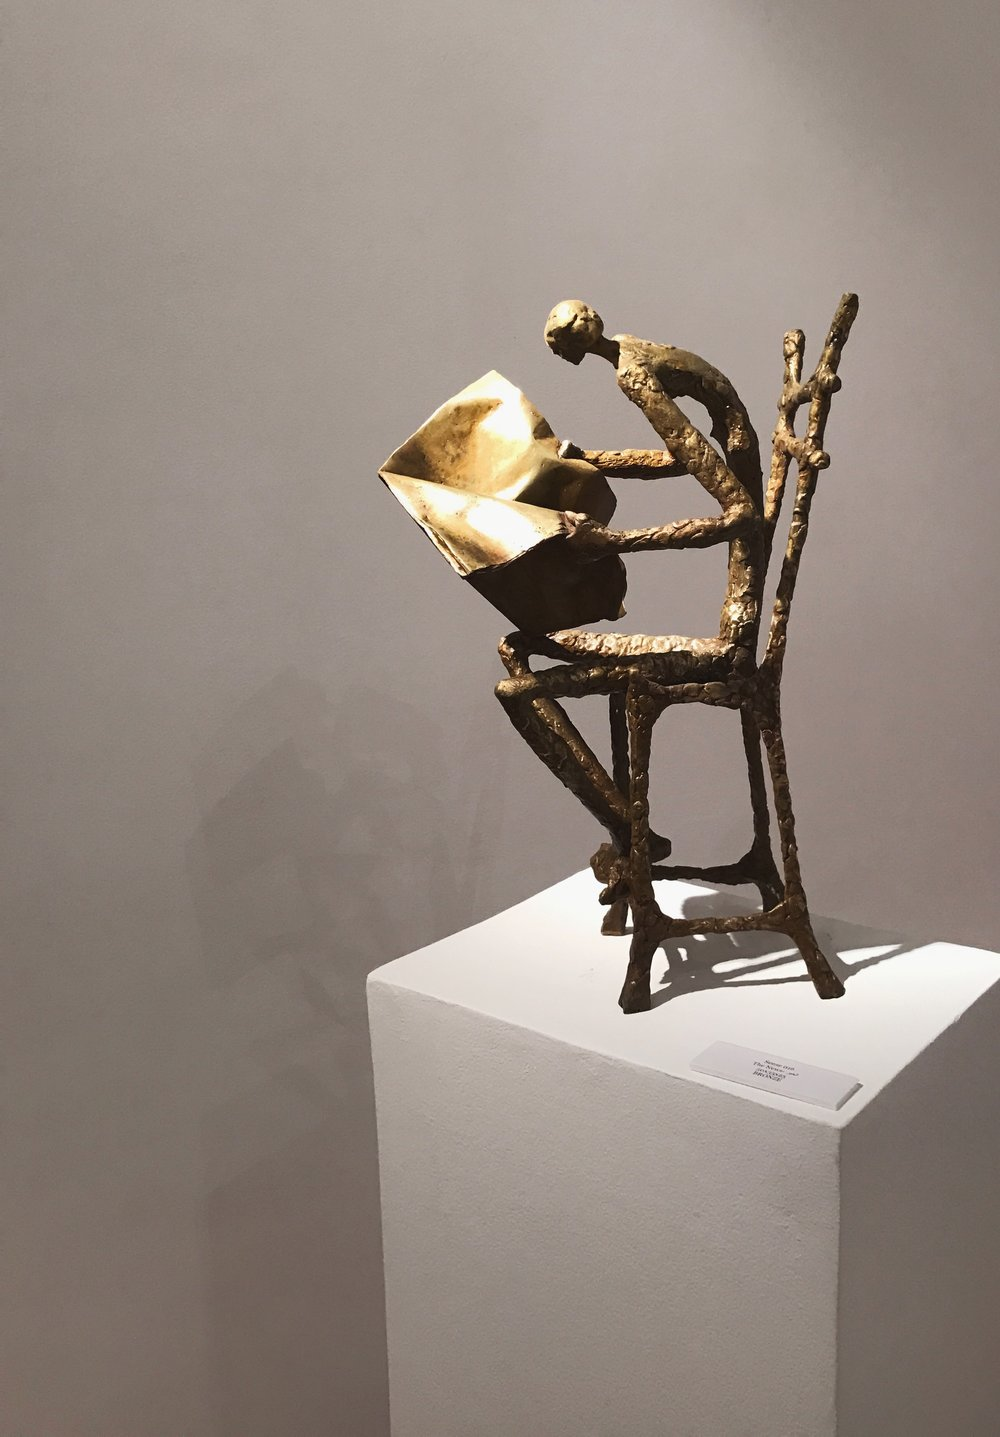 Nathan Doss   The News  Bronze  50 x 35 x 25 cm